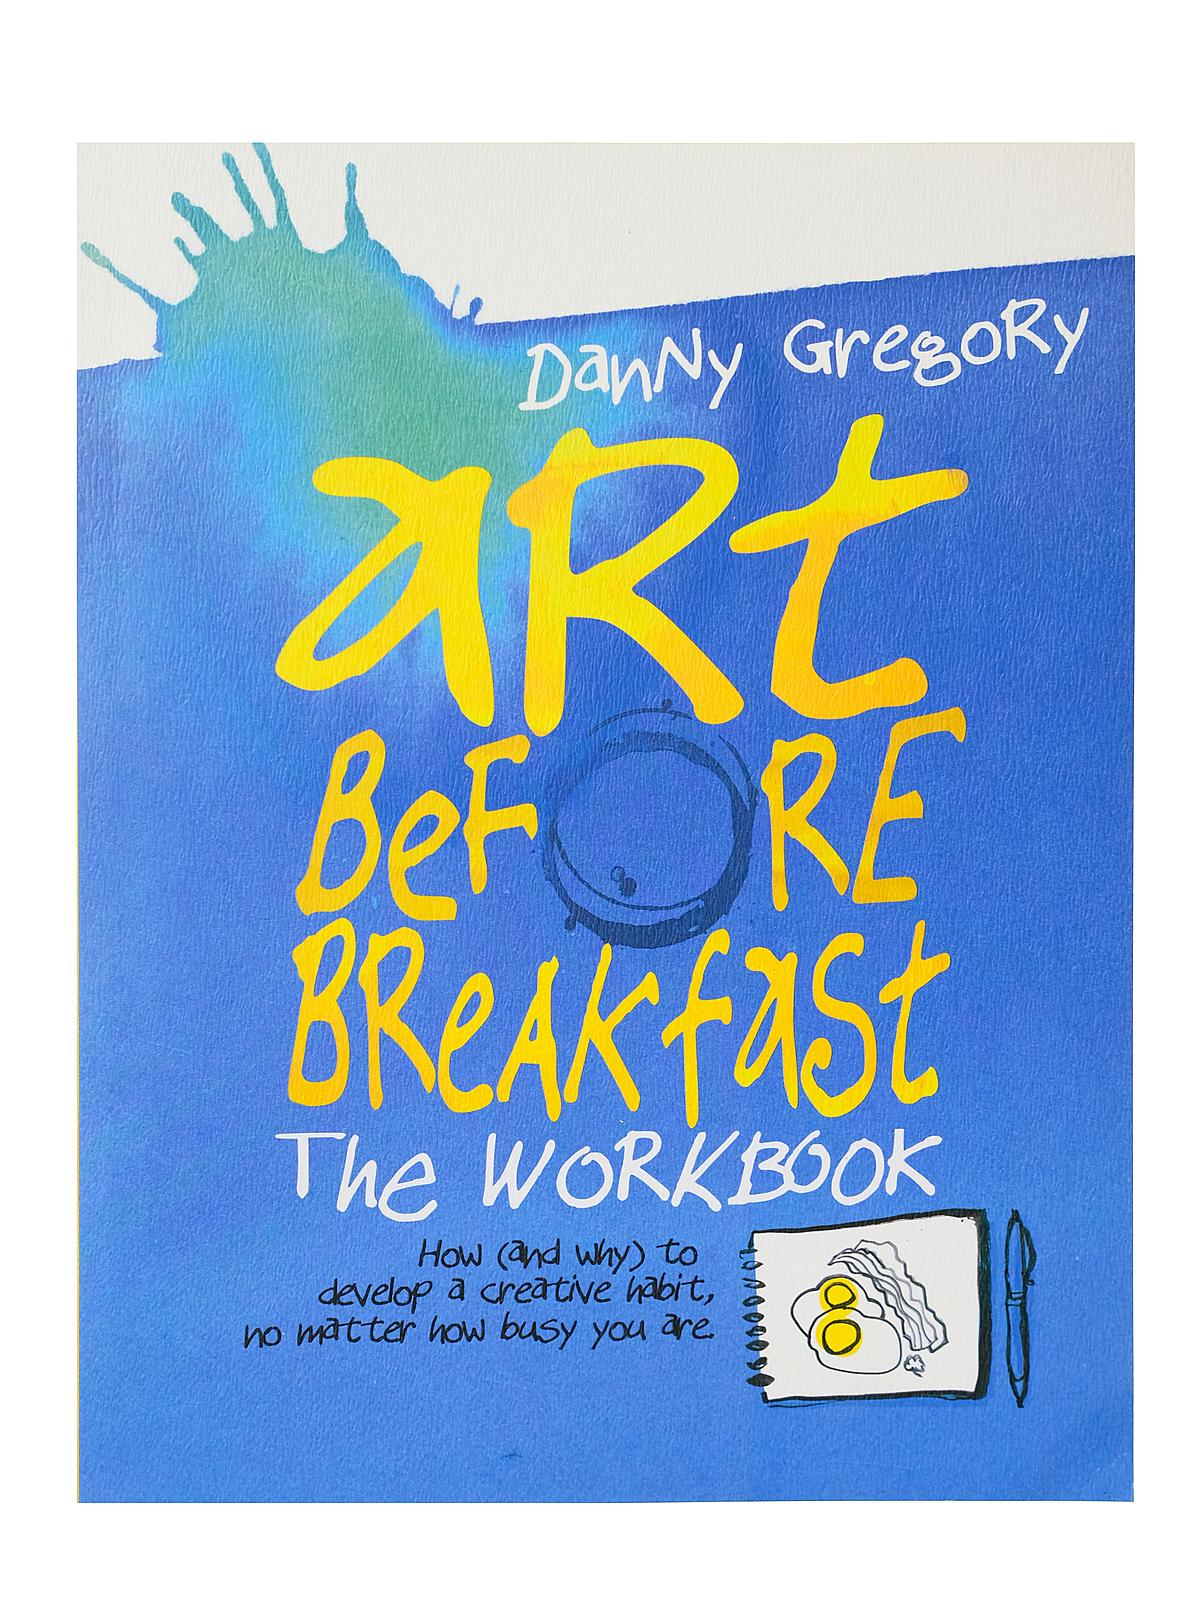 Art Brfore Breakfast: The Workbook